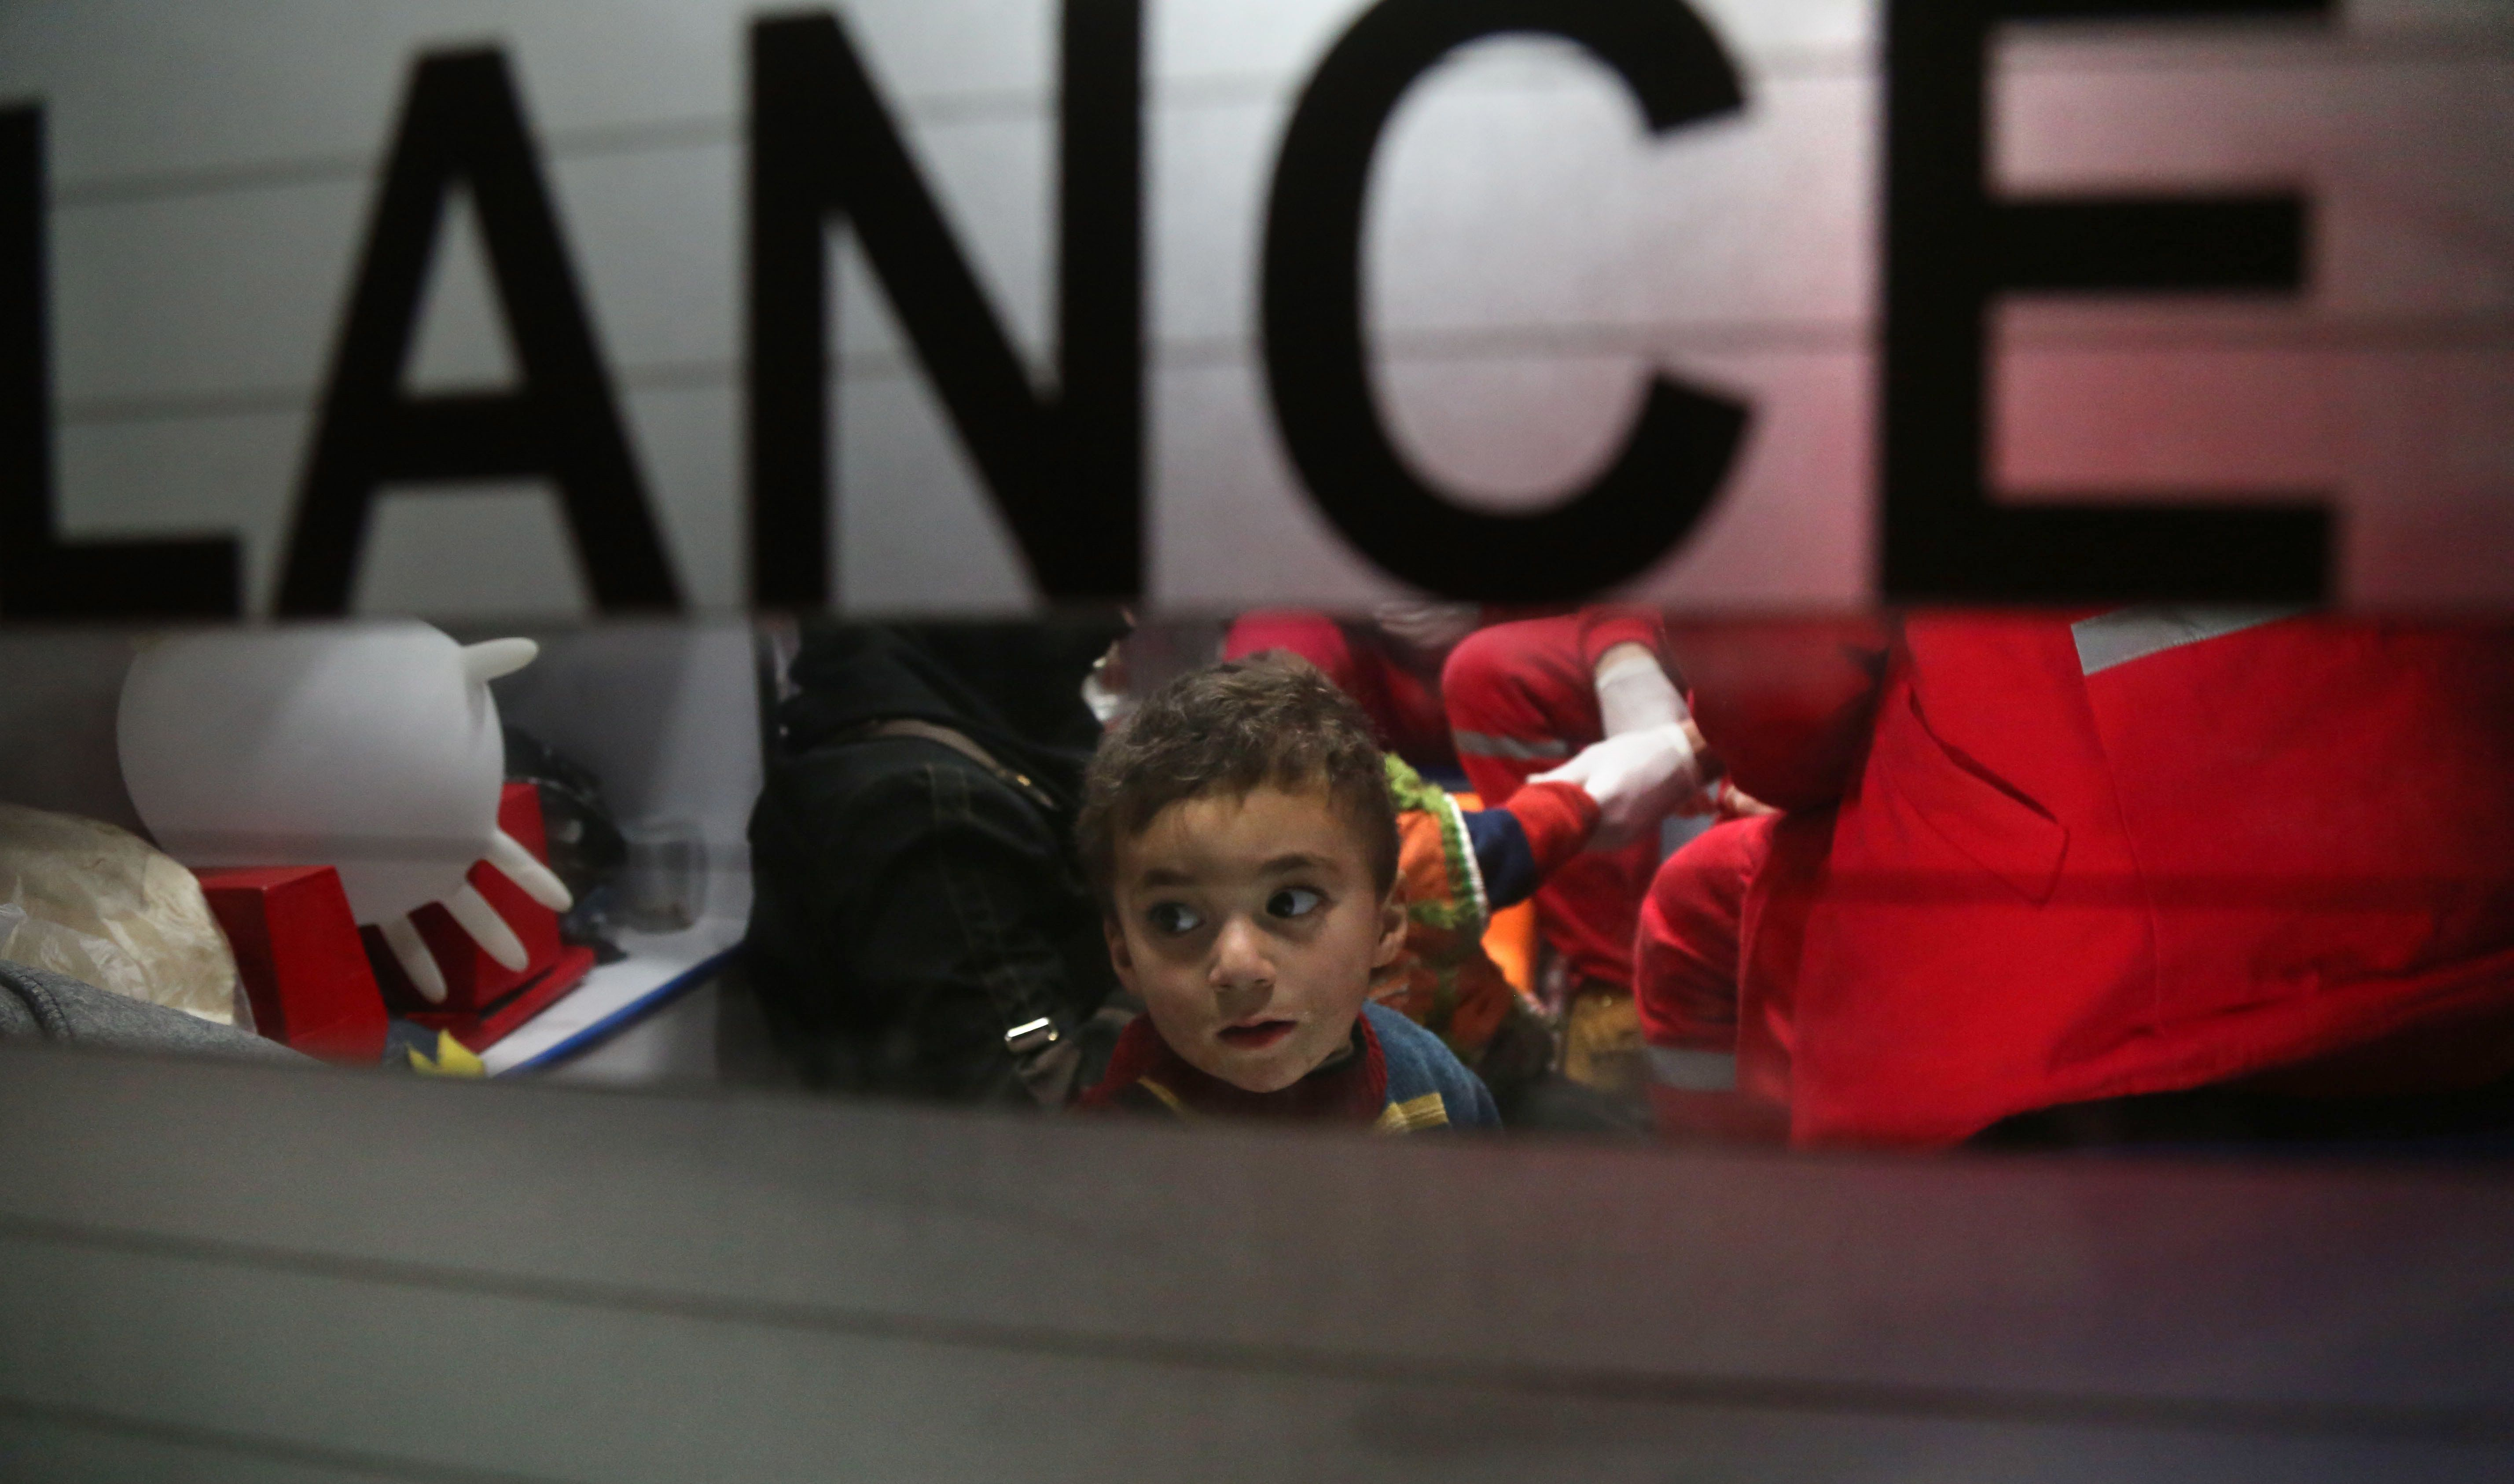 A Syrian child sits in an ambulance during an evacuation operation by the International Committee of the Red Cross in Douma in the eastern Ghouta region on the outskirts of the capital Damascus late on December 26, 2017. Aid workers have begun evacuating emergency medical cases from Syria's besieged rebel bastion of Eastern Ghouta, the International Committee of the Red Cross said, after months of waiting during which the UN said at least 16 people had died. Eastern Ghouta is one of the last remaining rebel strongholds in Syria and has been under a tight government siege since 2013, causing severe food and medical shortages for some 400,000 residents. / AFP PHOTO / Amer ALMOHIBANY        (Photo credit should read AMER ALMOHIBANY/AFP/Getty Images)